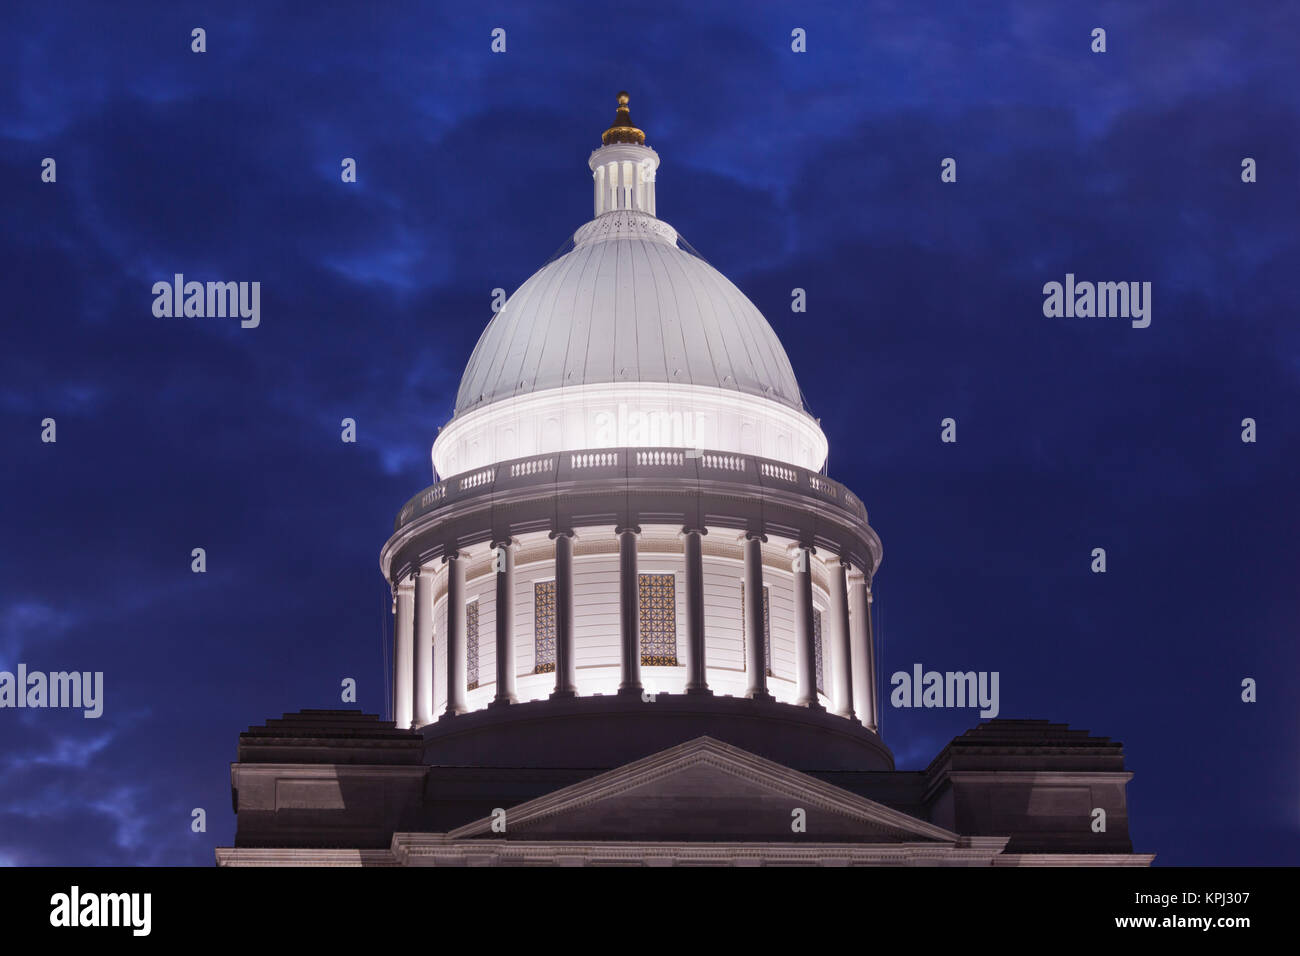 Arkansas state capitol dome stock photos arkansas state capitol usa arkansas little rock arkansas state capitol exterior at dusk stock image malvernweather Gallery